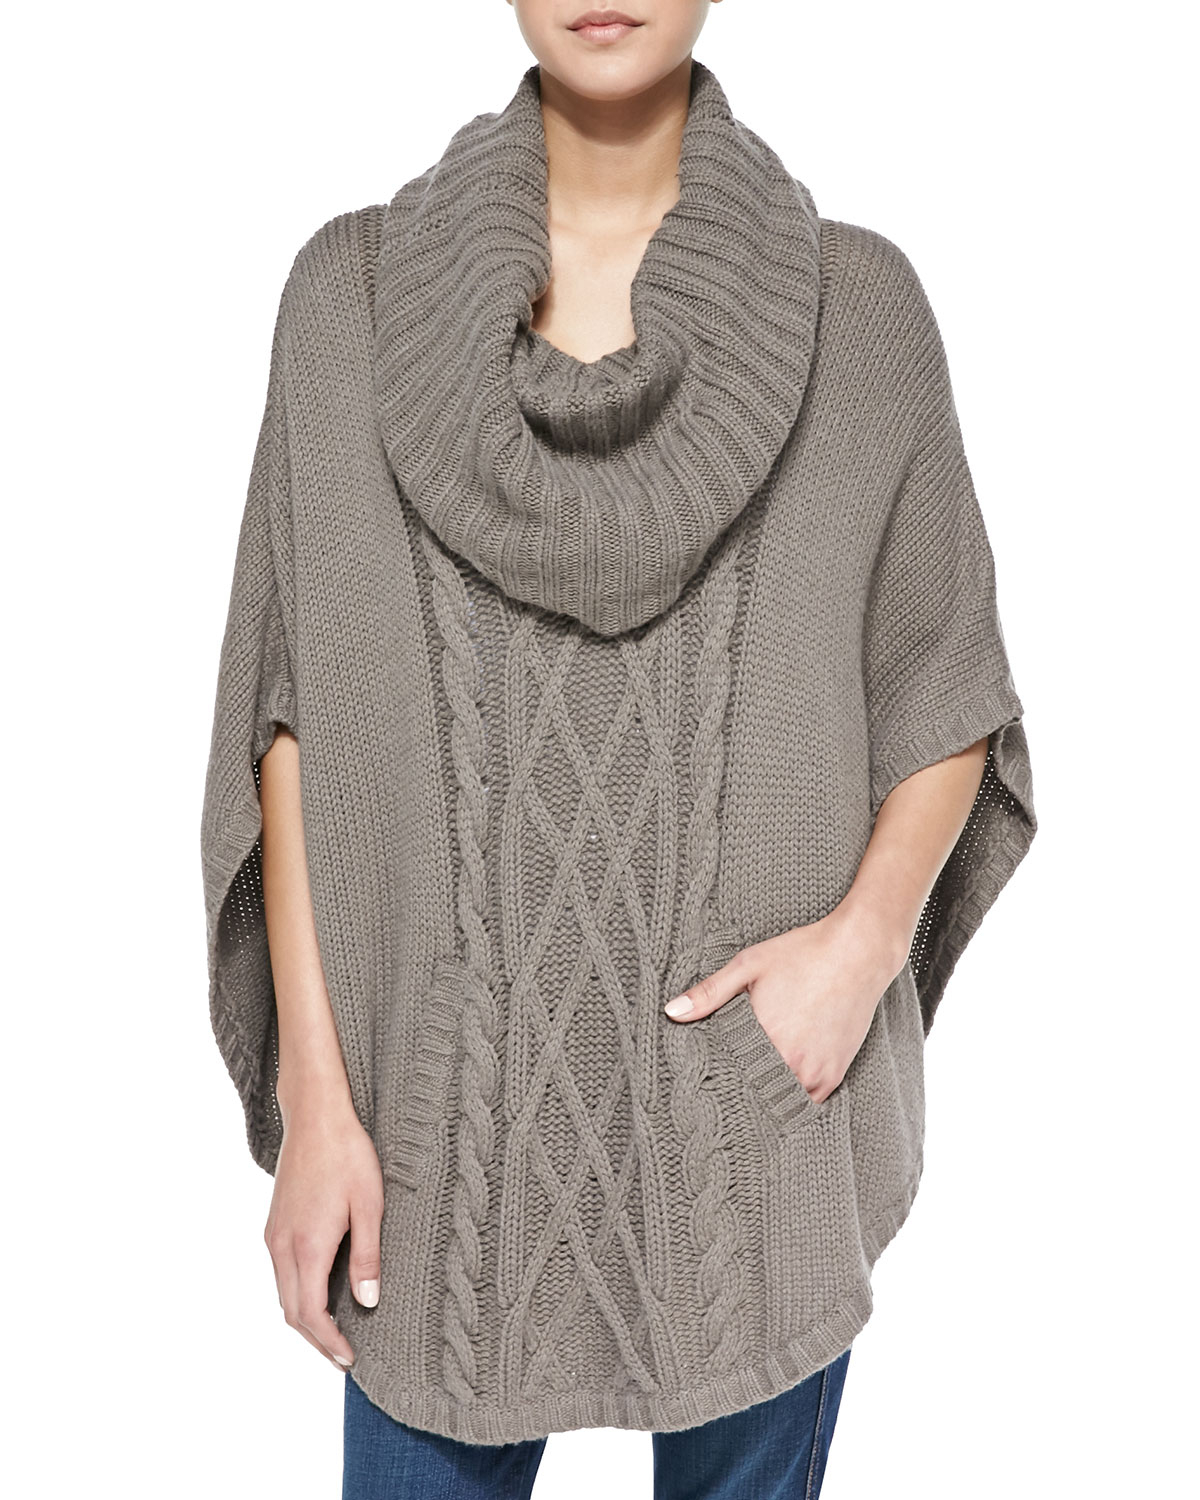 Cowl Neck Poncho Knitting Pattern : Autumn cashmere Cable-knit Cowl-neck Cashmere Poncho in Gray Lyst